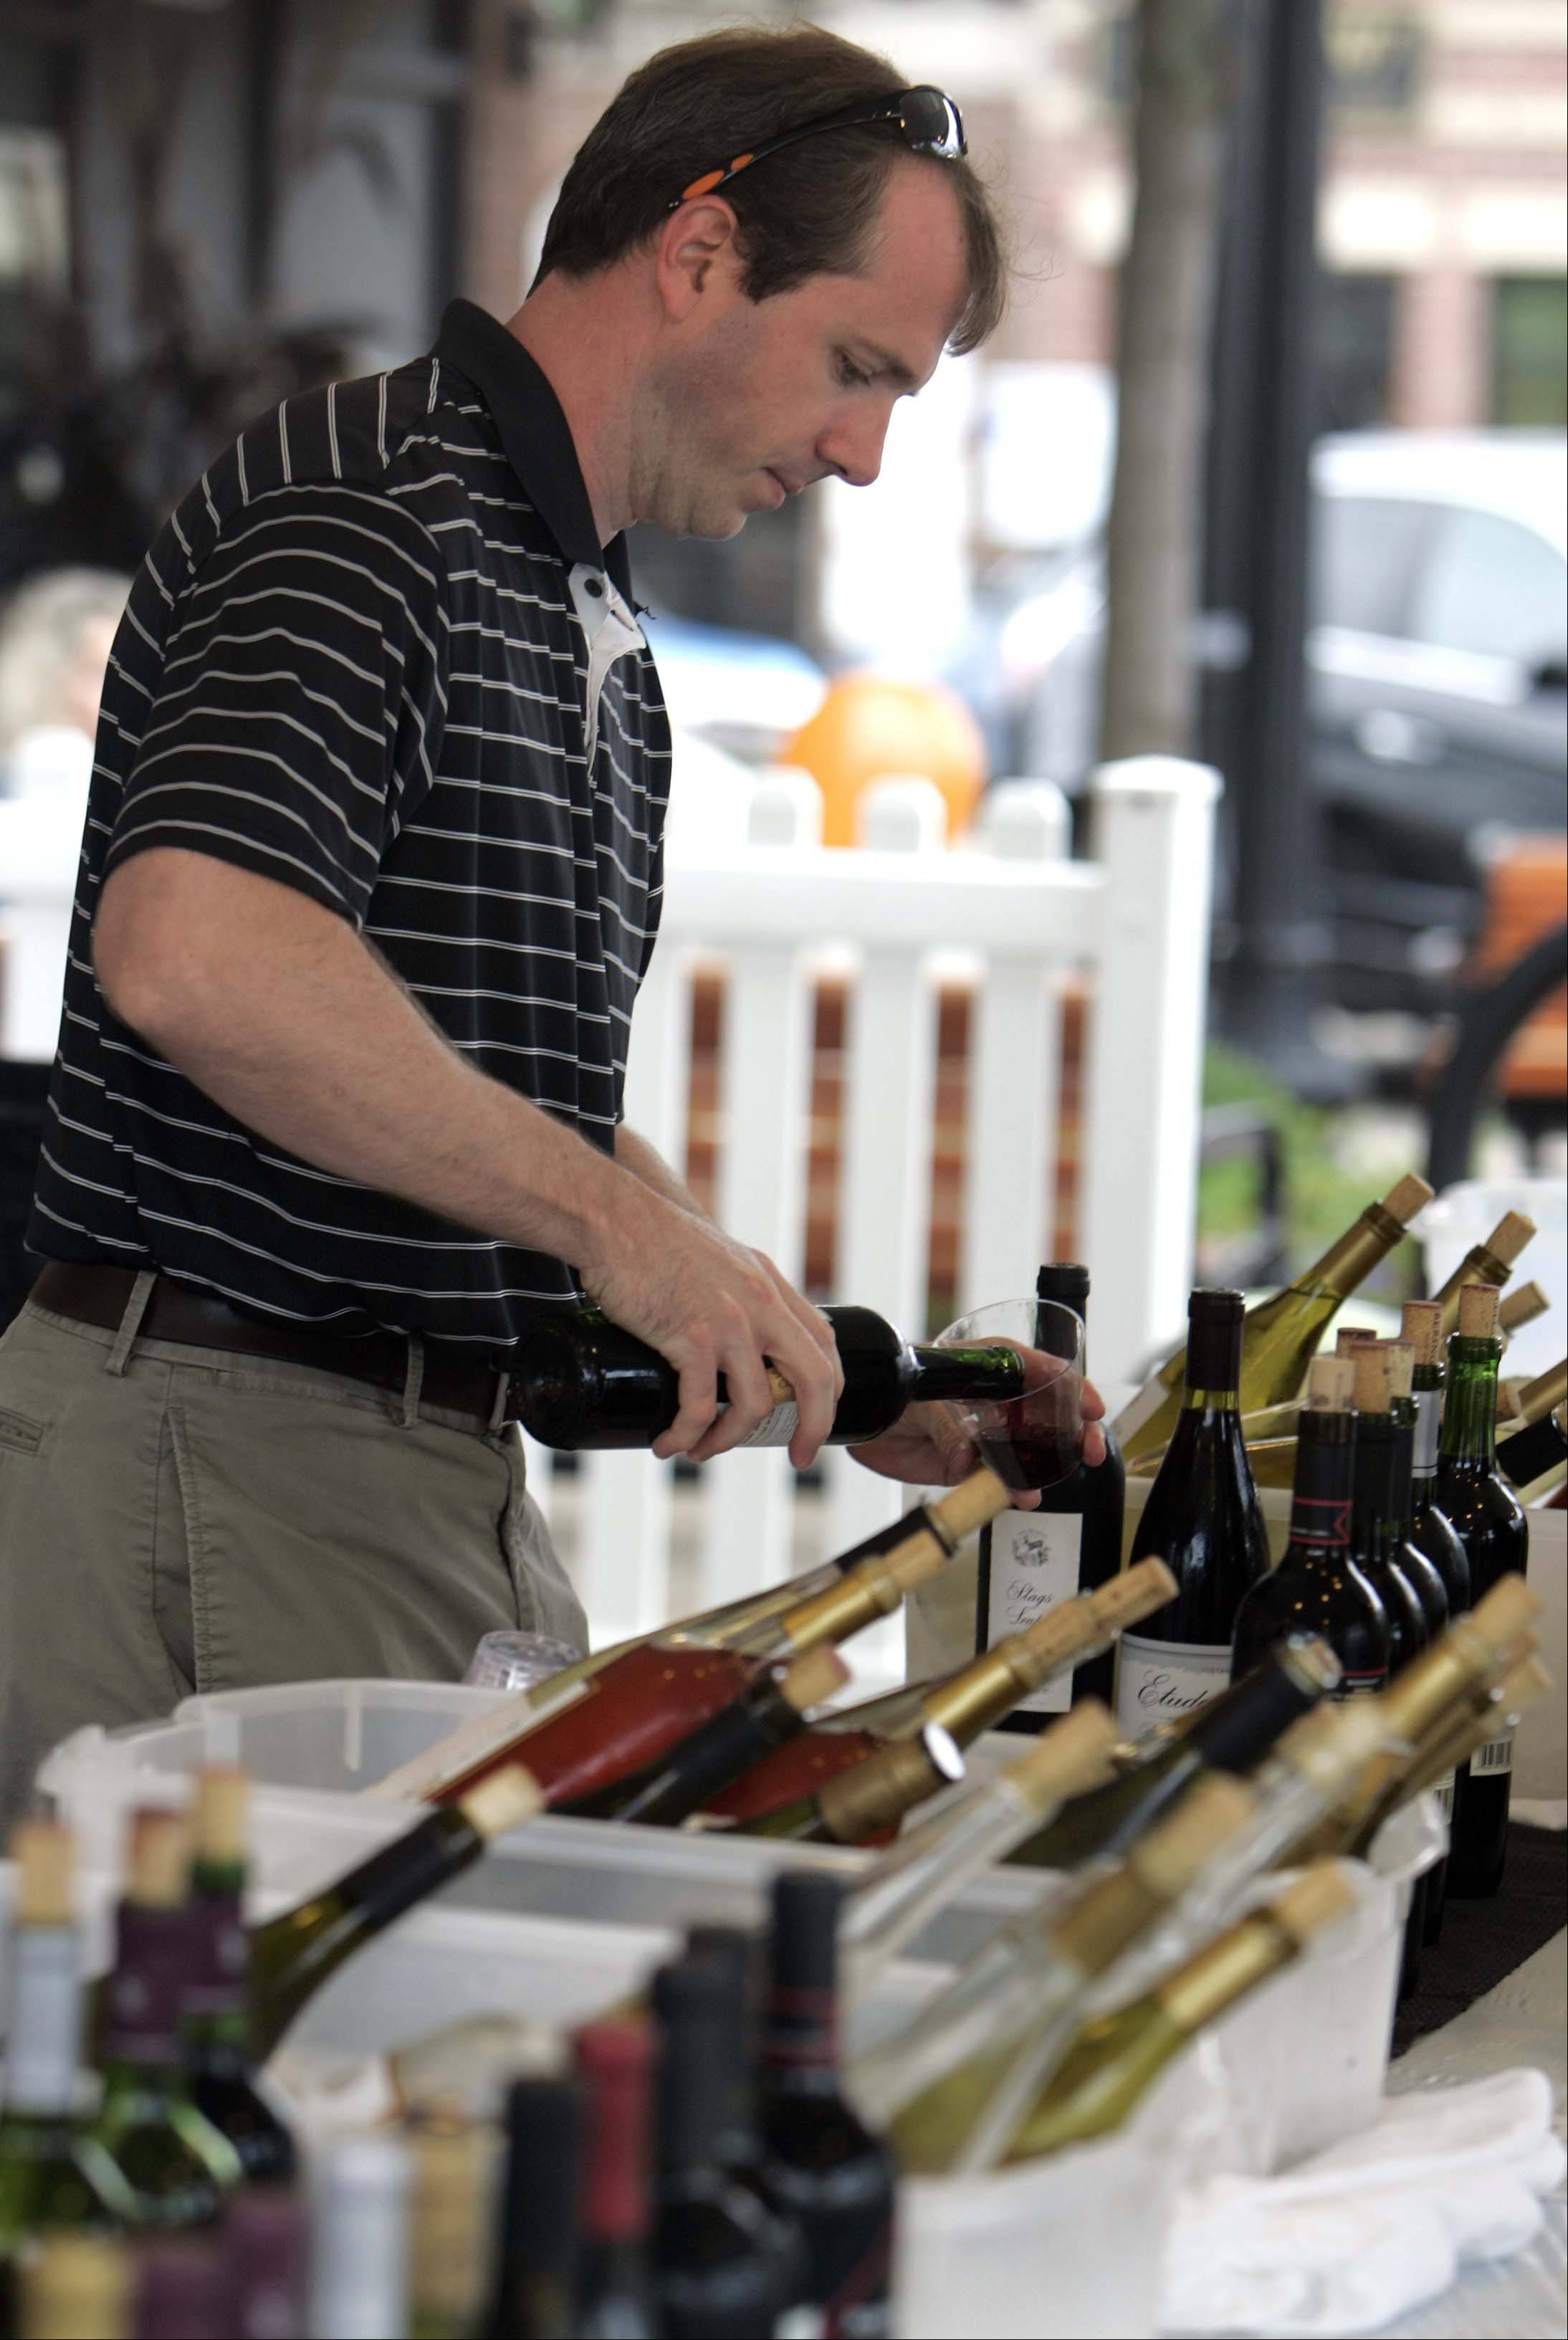 Emmett Malloy pours a glass of wine for a customer during last year's Festival of the Vine in Geneva. This year's fest ends Sunday.